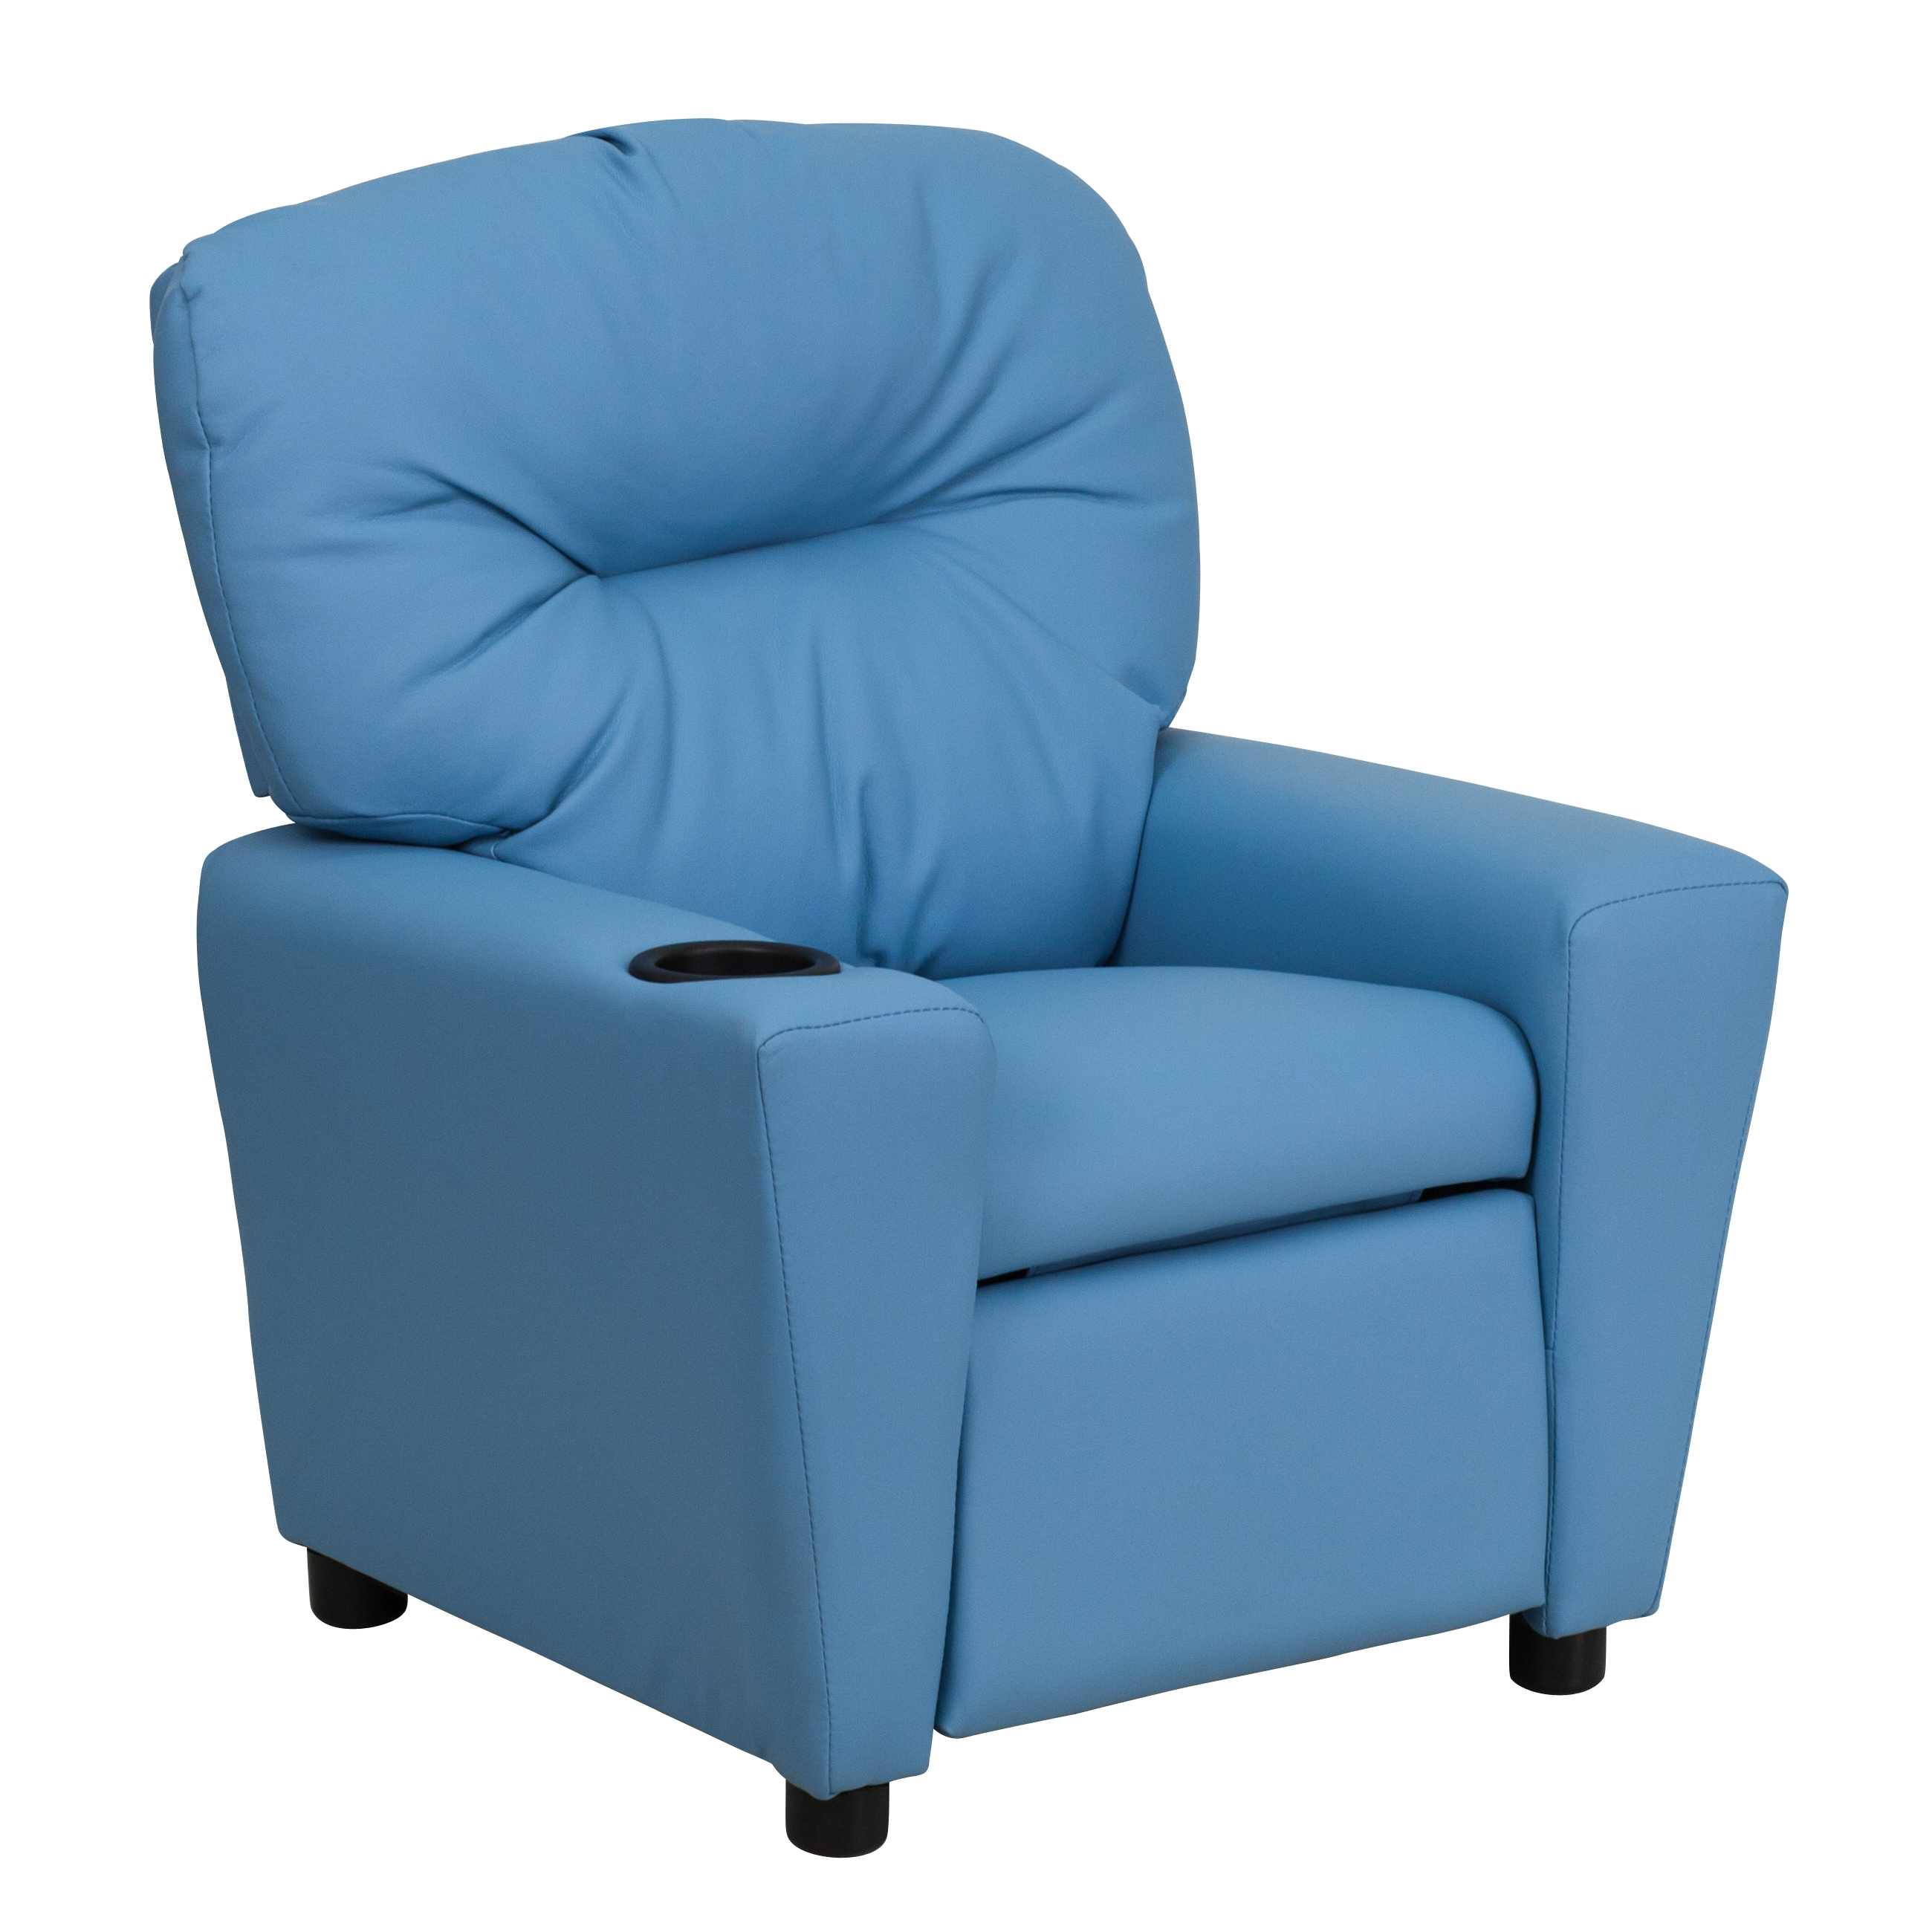 Kids Reclining Chair Light Blue Vinyl Kids Recliner Cup Holder Furniture Chair